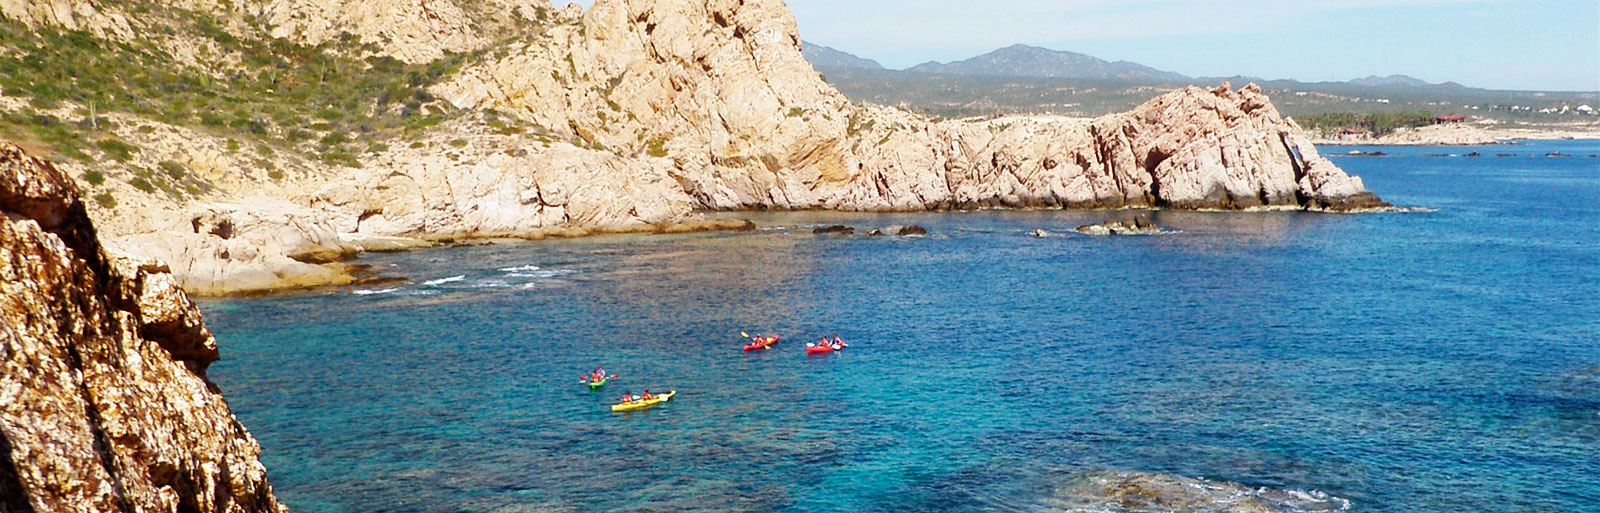 Best Yoga Retreats in Mexico: Sea Kayaking Yoga Retreat